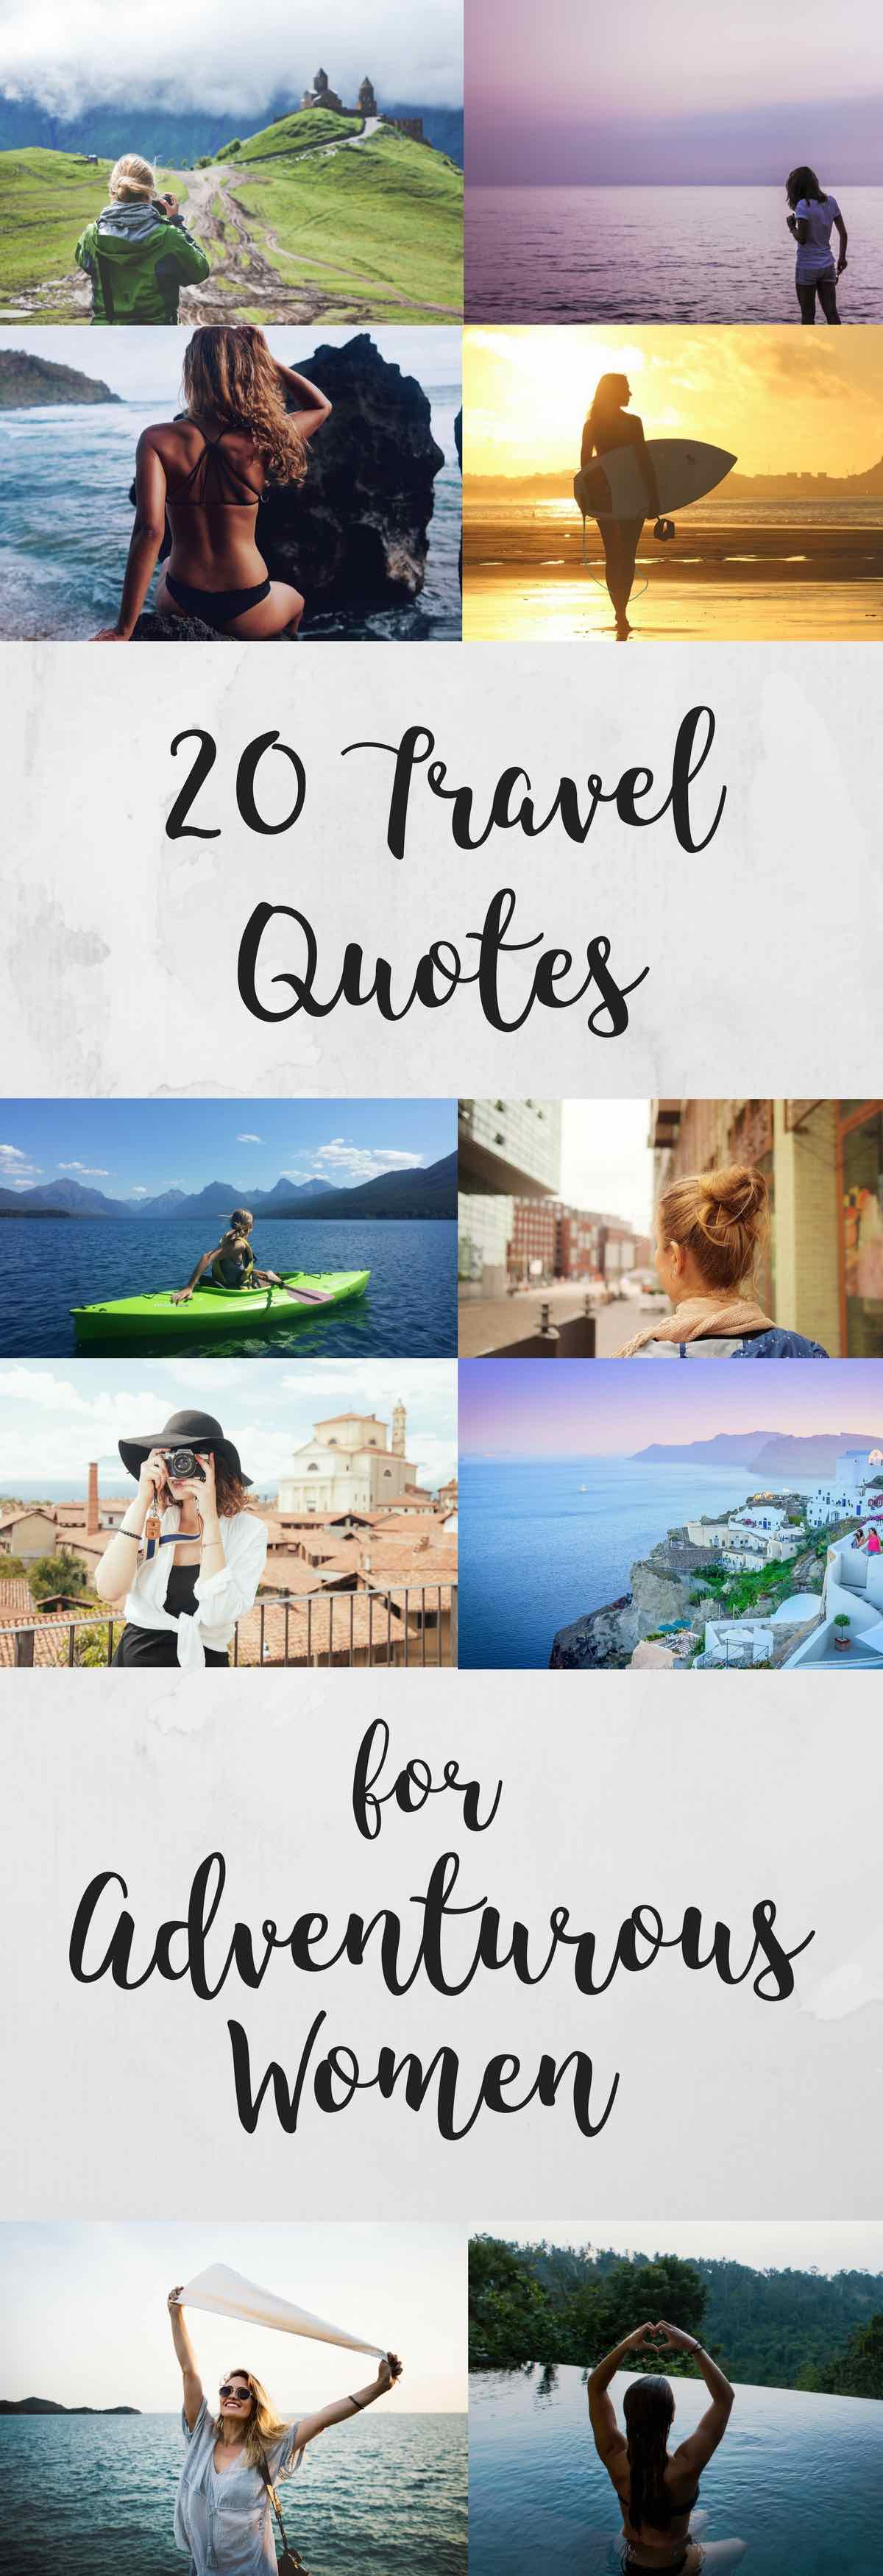 I love these quotes about travel for women!